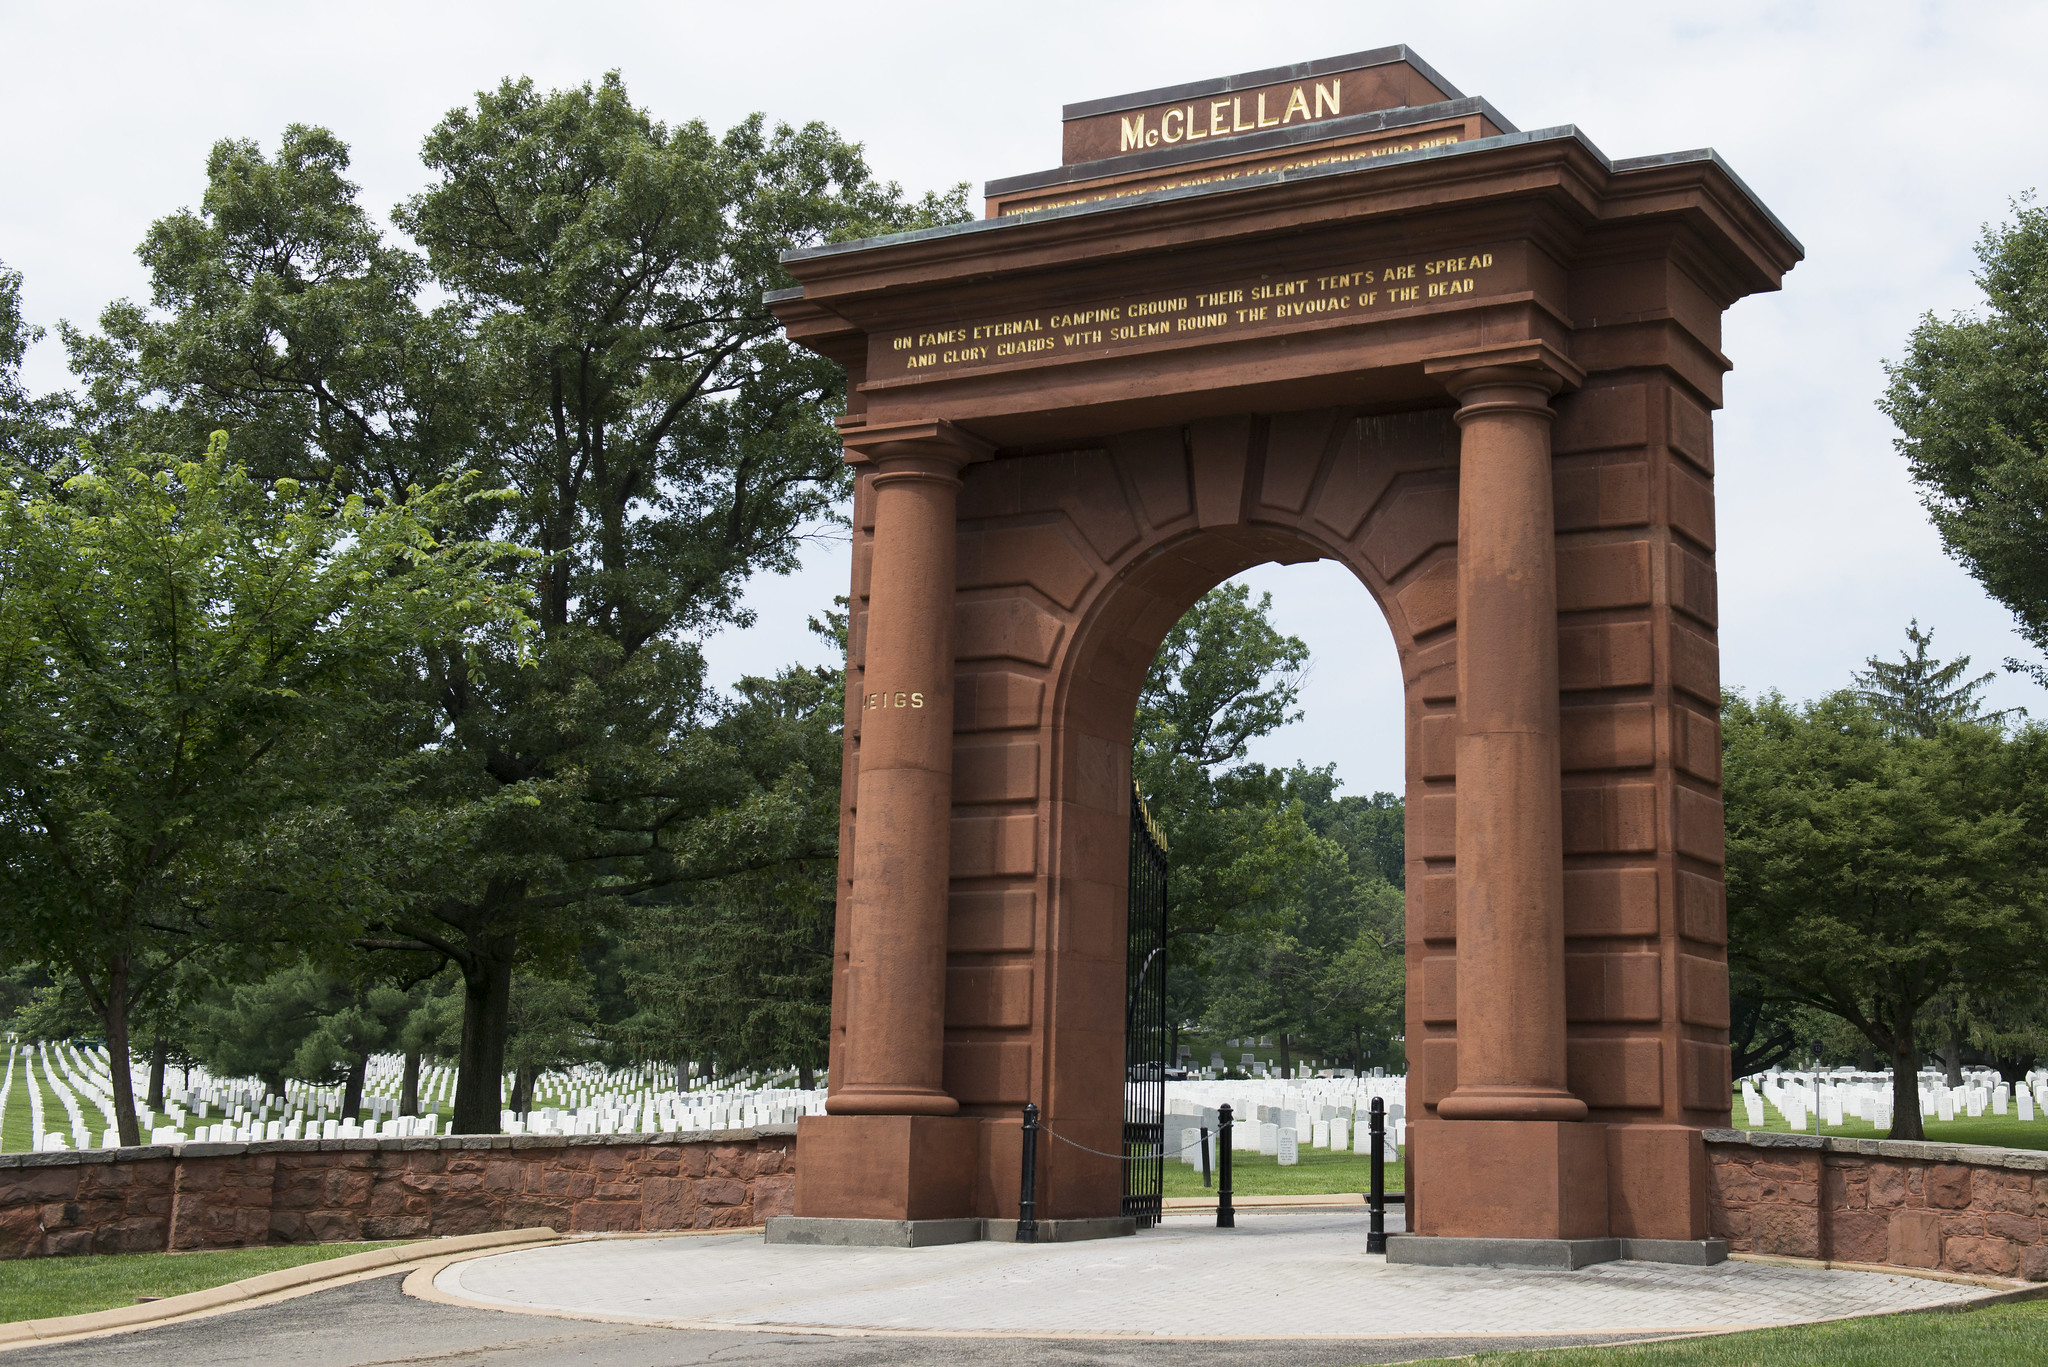 McClellan Gate, with rows of white marble headstones in the background